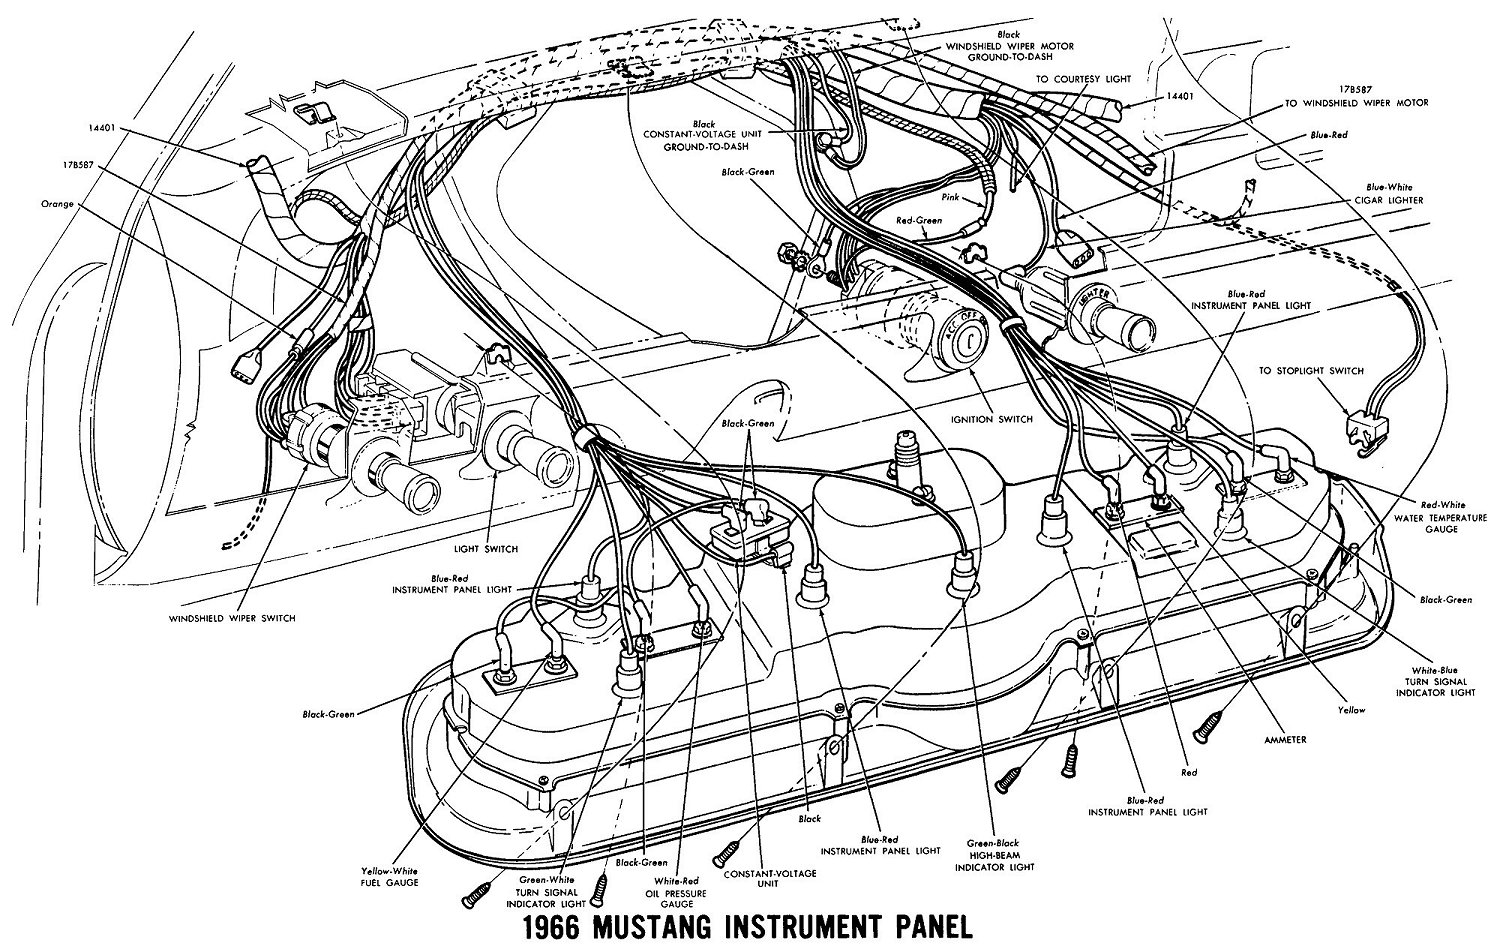 66instr 1966 mustang wiring diagrams average joe restoration Wire Gauge at mifinder.co